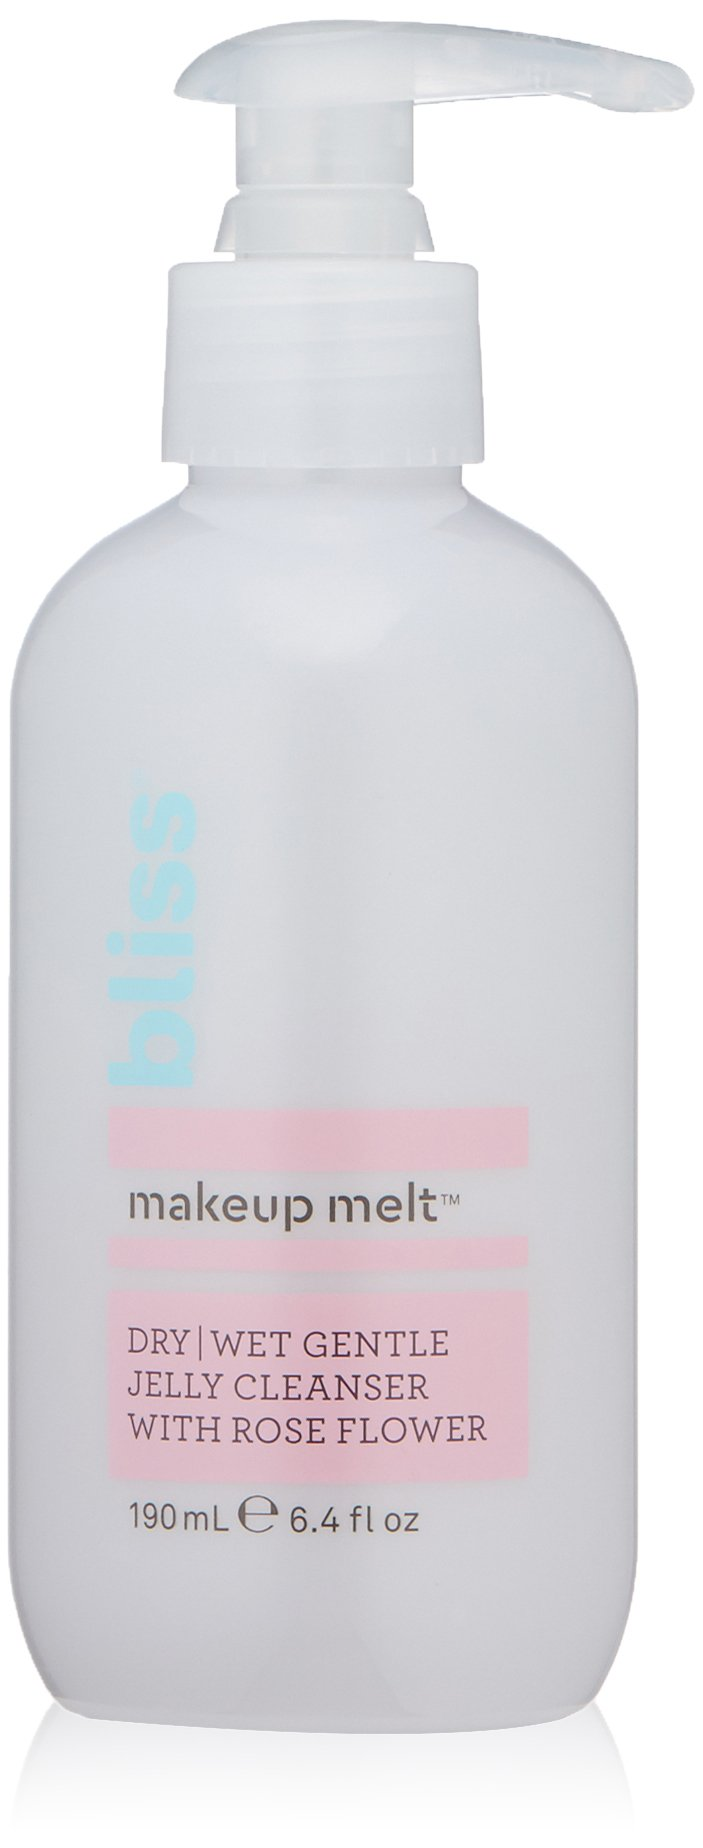 Bliss Makeup Melt Jelly Cleanser   Suitable on Dry/Wet Skin   Super-Gentle with Soothing Rose Flower    Paraben Free, Cruelty Free   6.4 fl oz